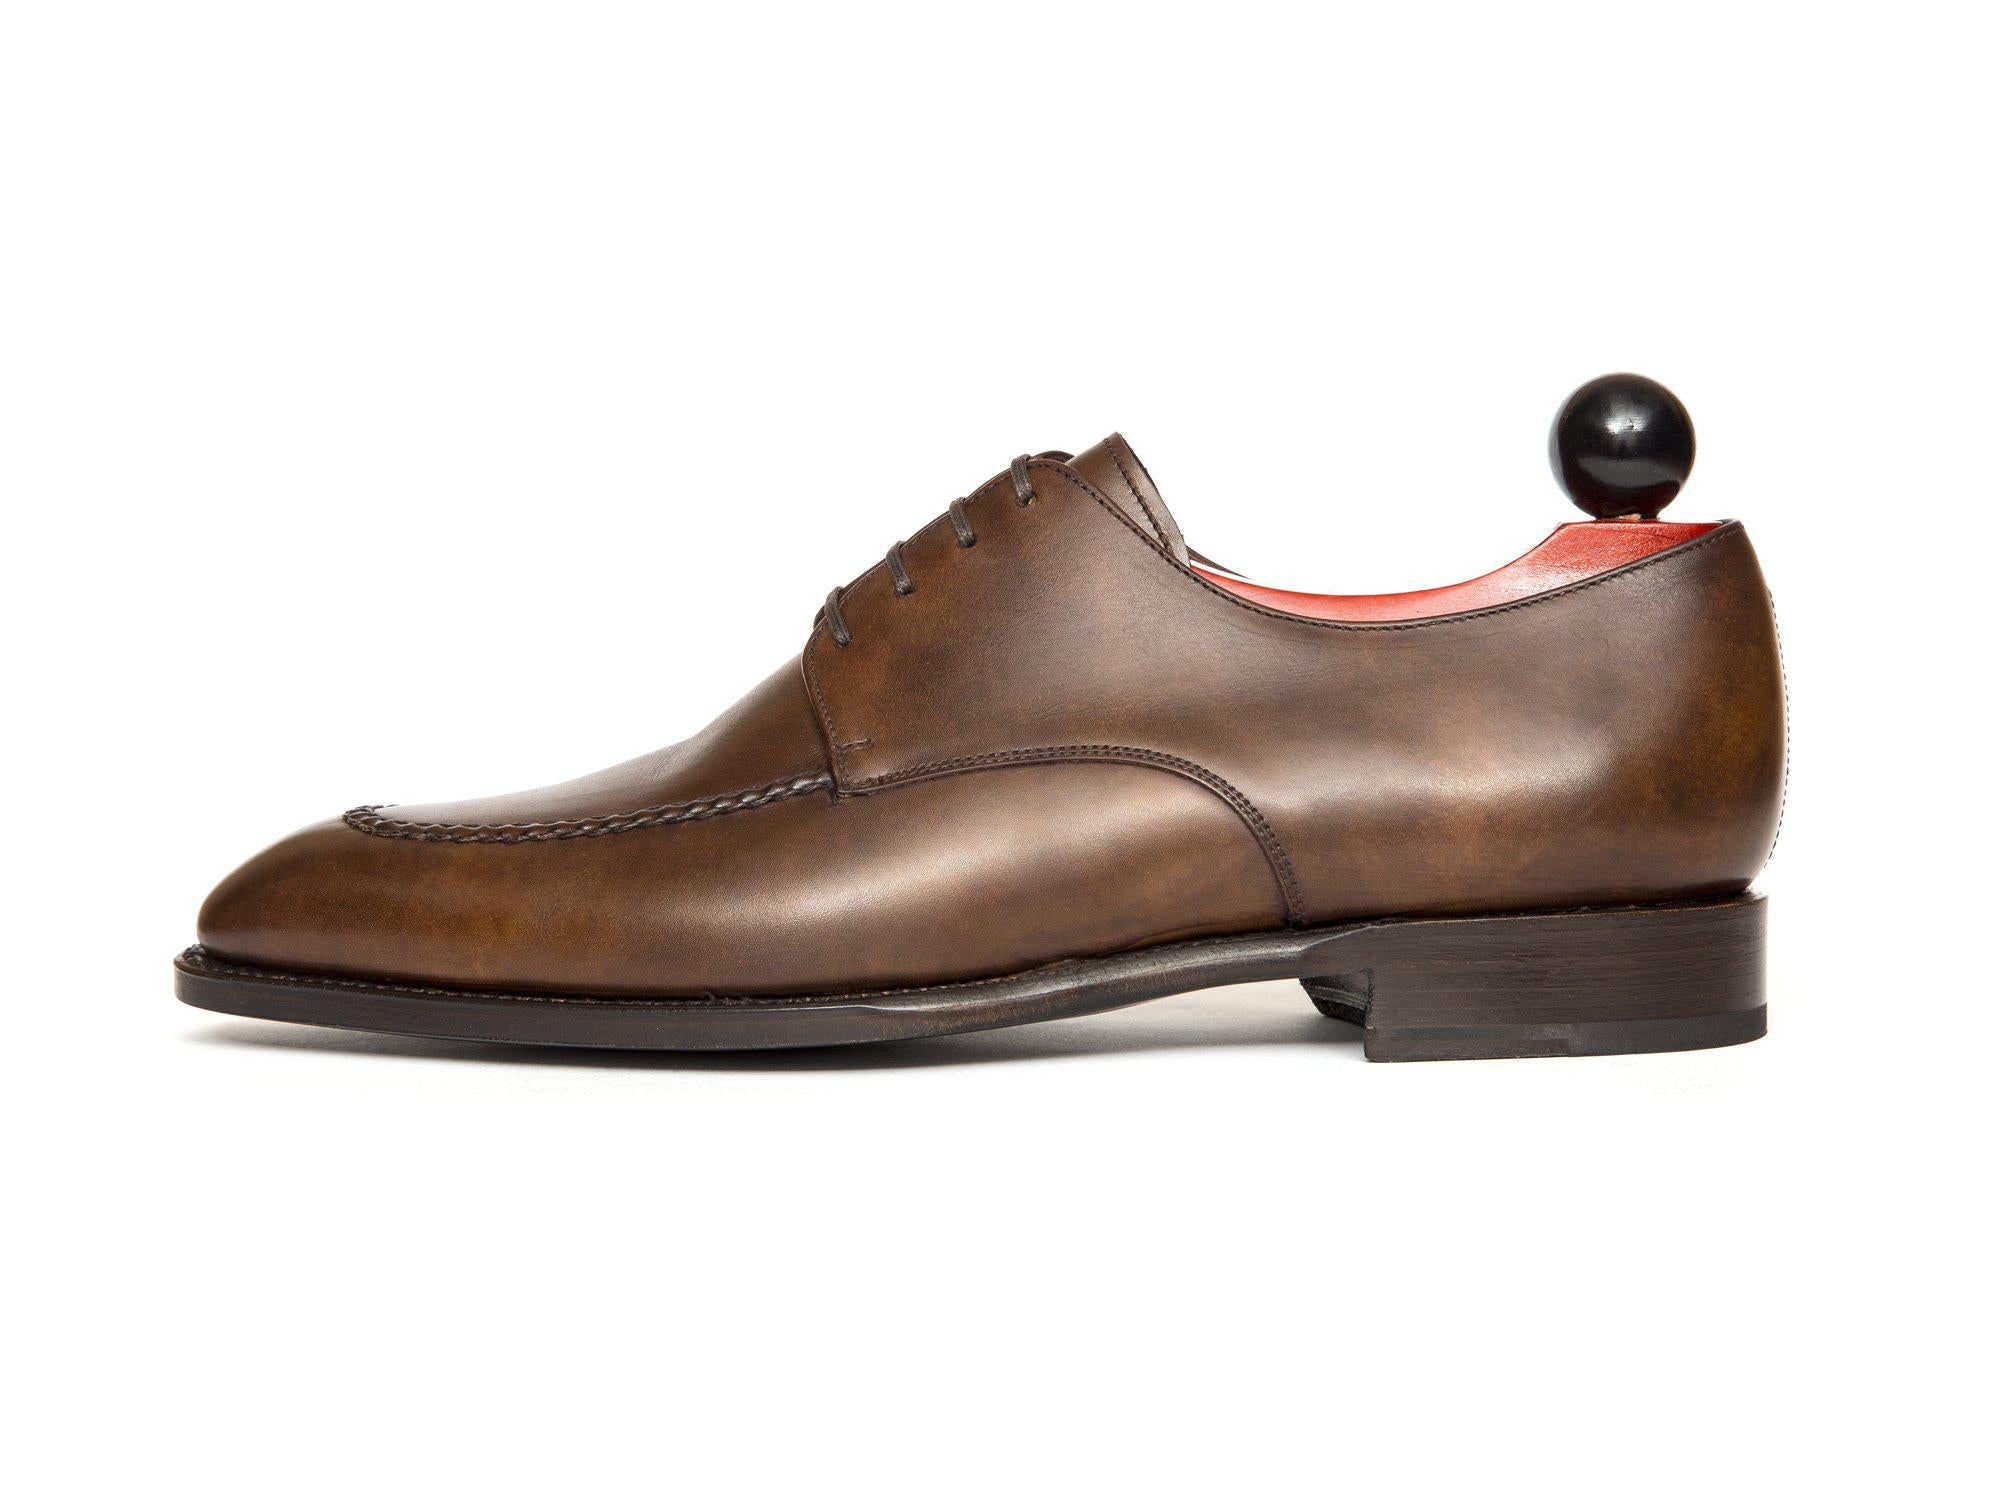 J.FitzPatrick Footwear - Lynwood - Copper Museum Calf - SEA Last